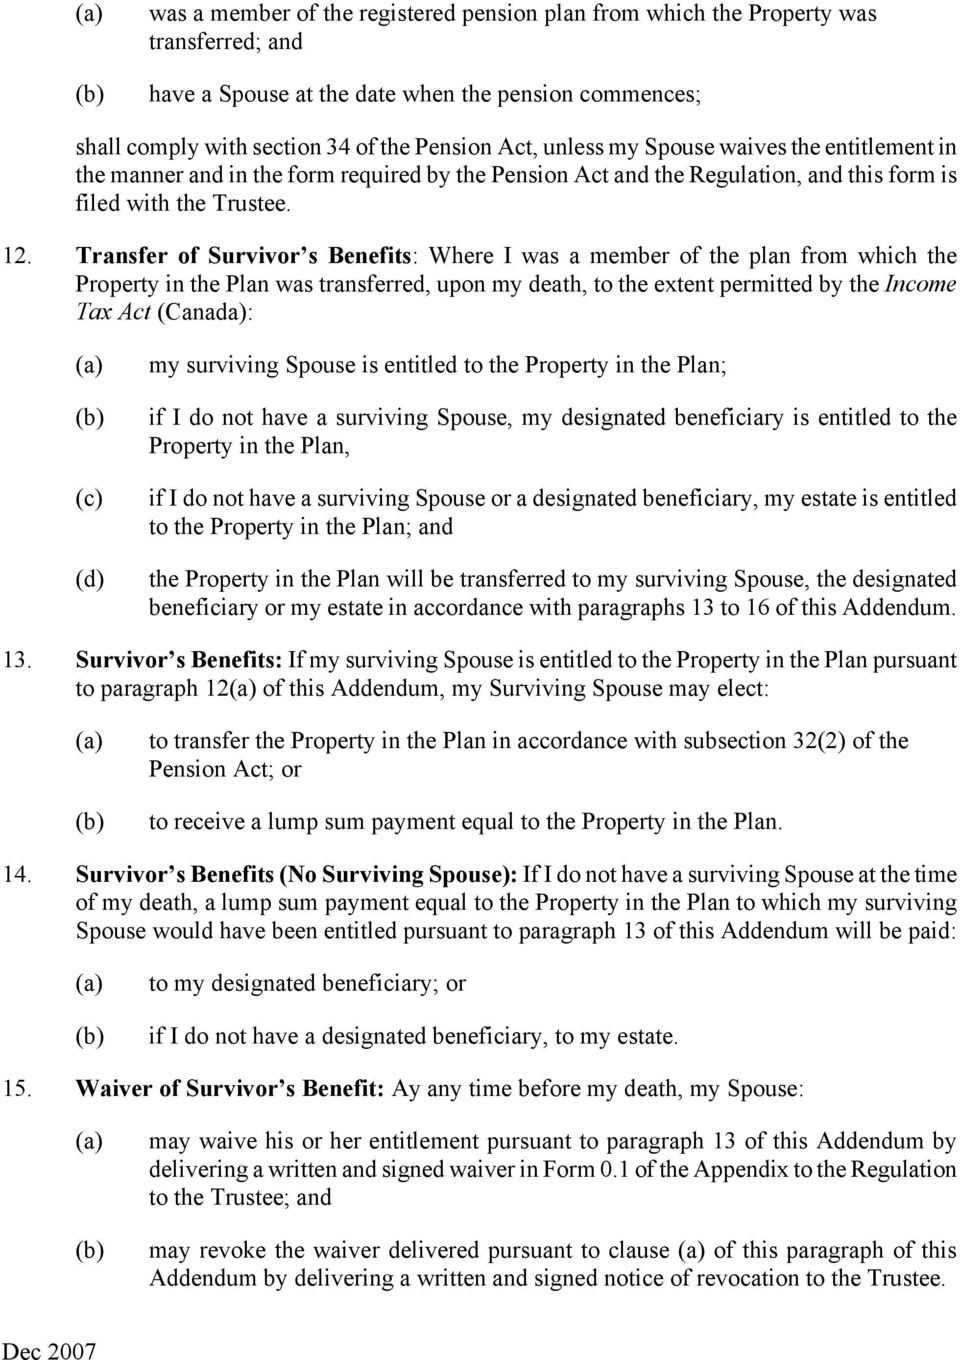 Transfer of Survivor s Benefits: Where I was a member of the plan from which the Property in the Plan was transferred, upon my death, to the extent permitted by the Income Tax Act (Canada): (d) my